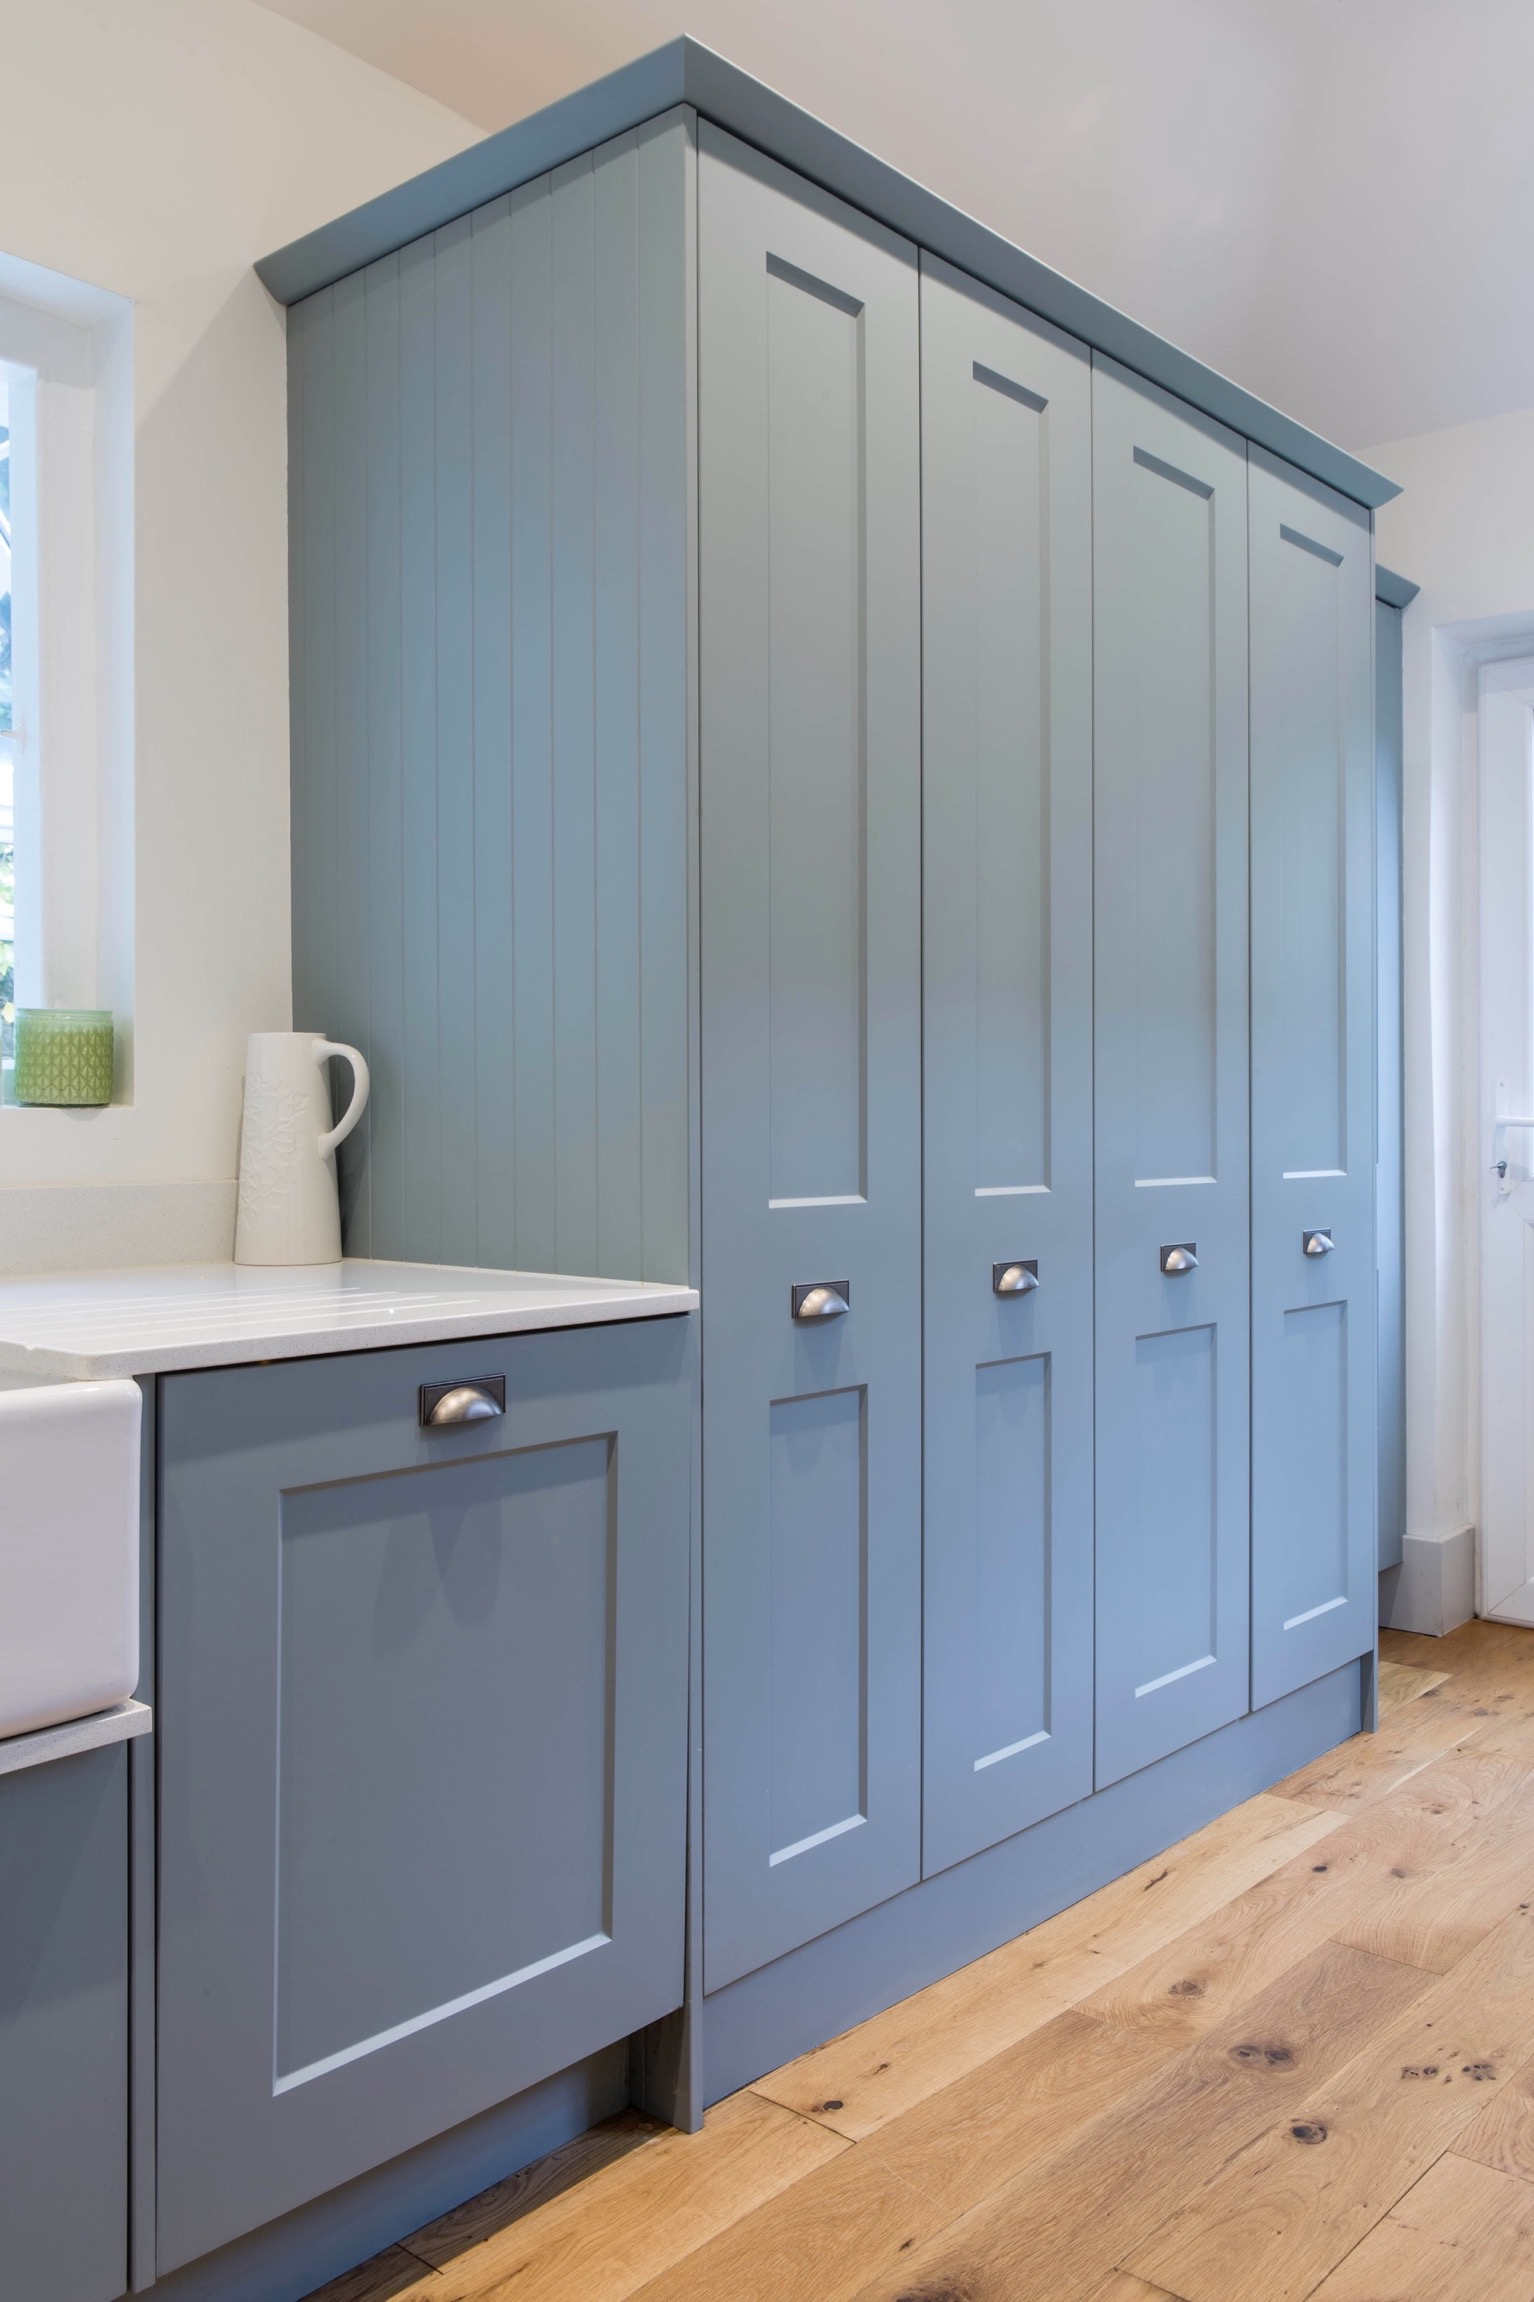 washing machine and clothes dryer in cupboard thame bespoke kitchen design oxfordshire 1